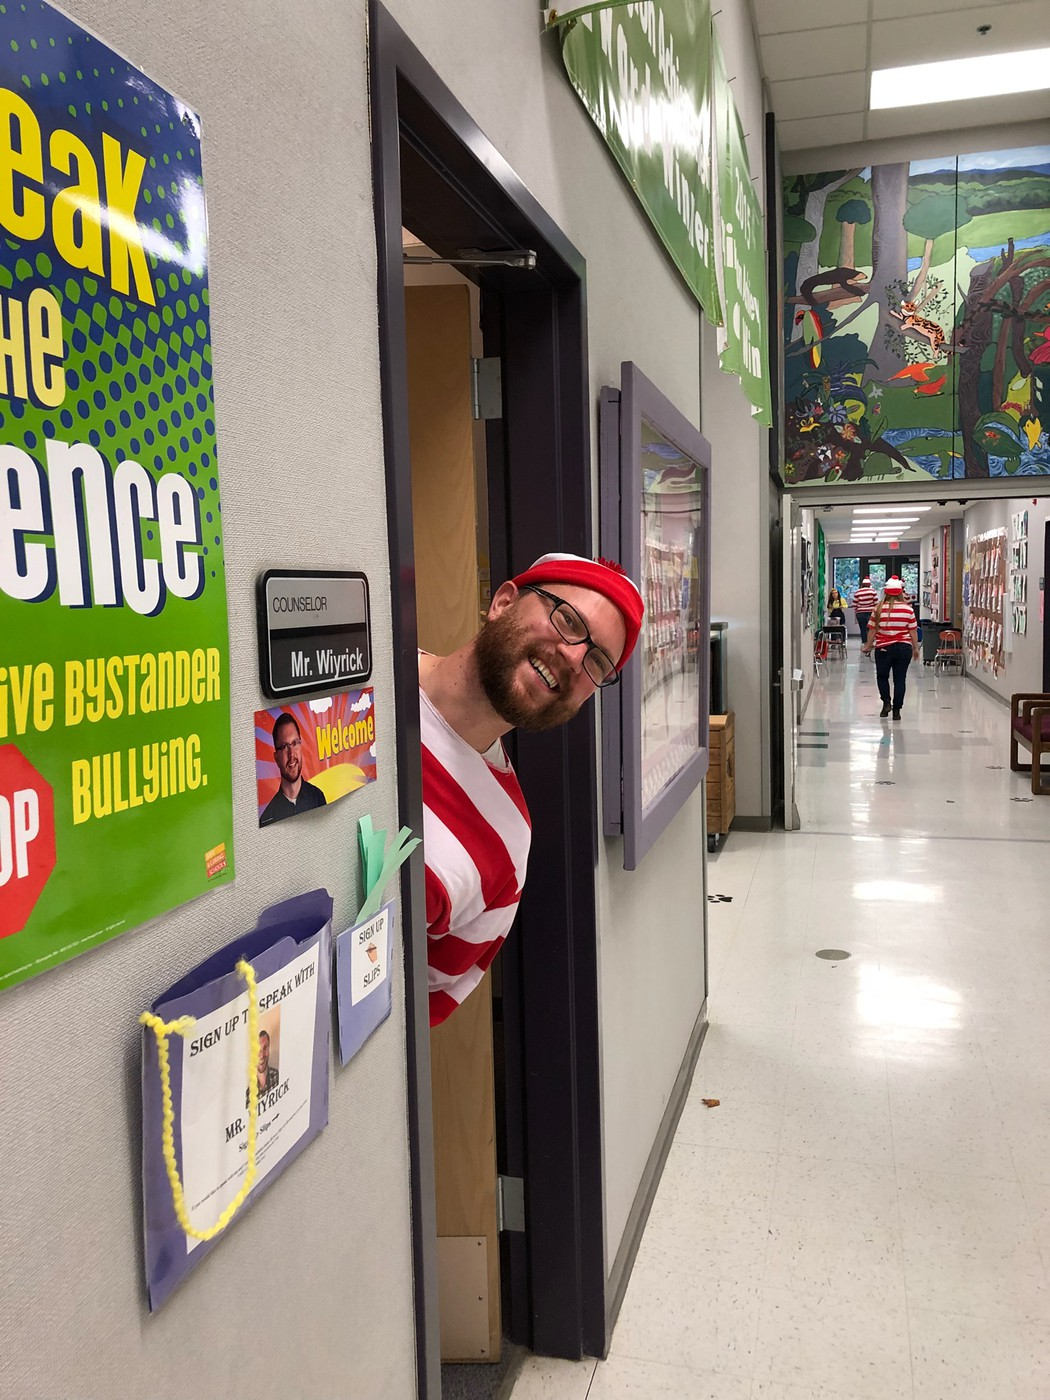 Mr Wiyrick as Where's Waldo